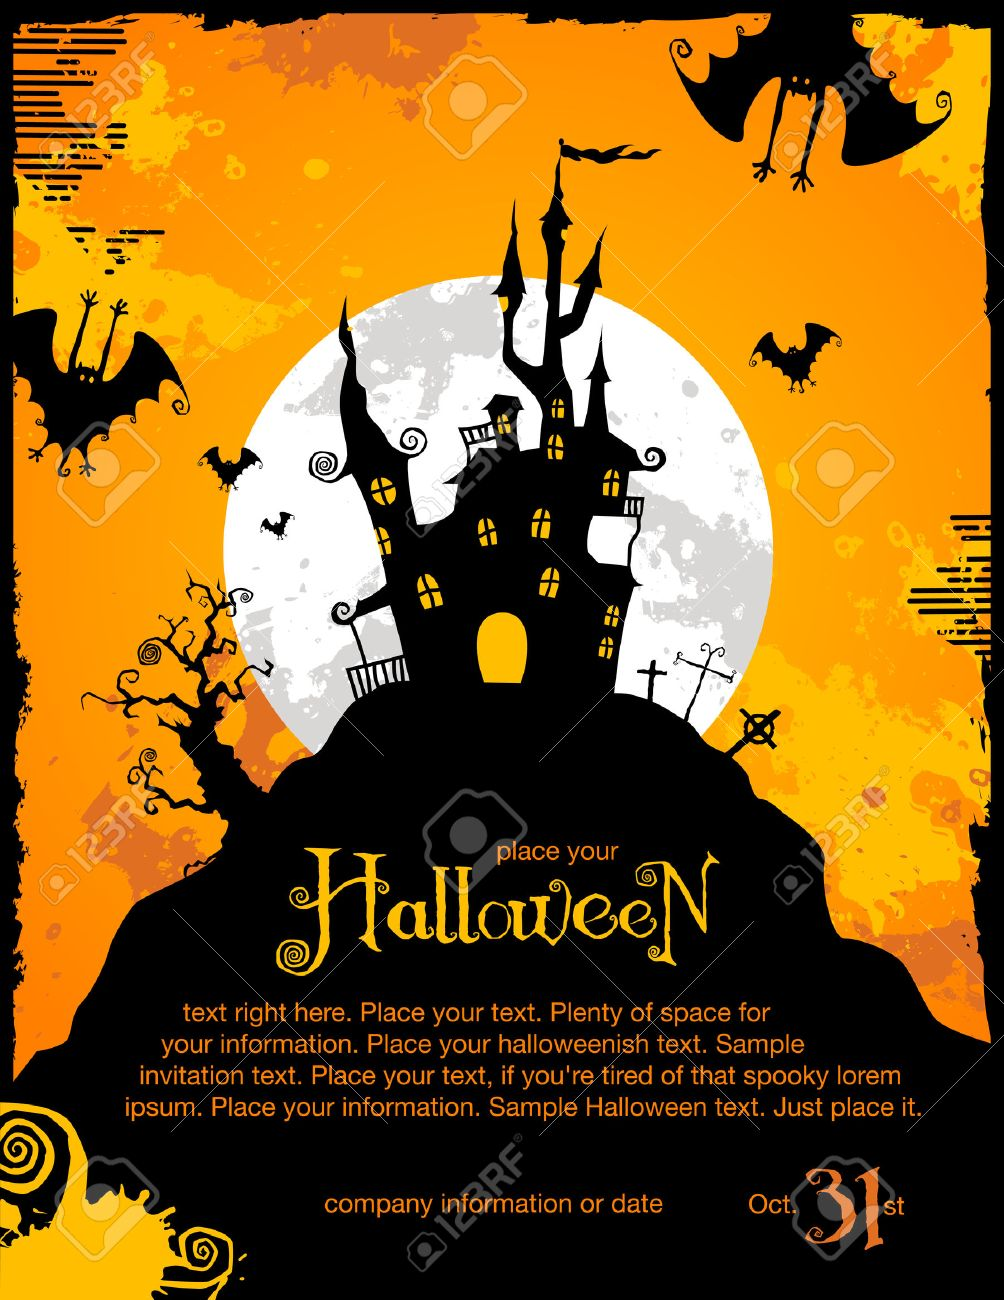 Halloween Invitation Or Background With Spooky Schloss Und Fledermause Standard Bild